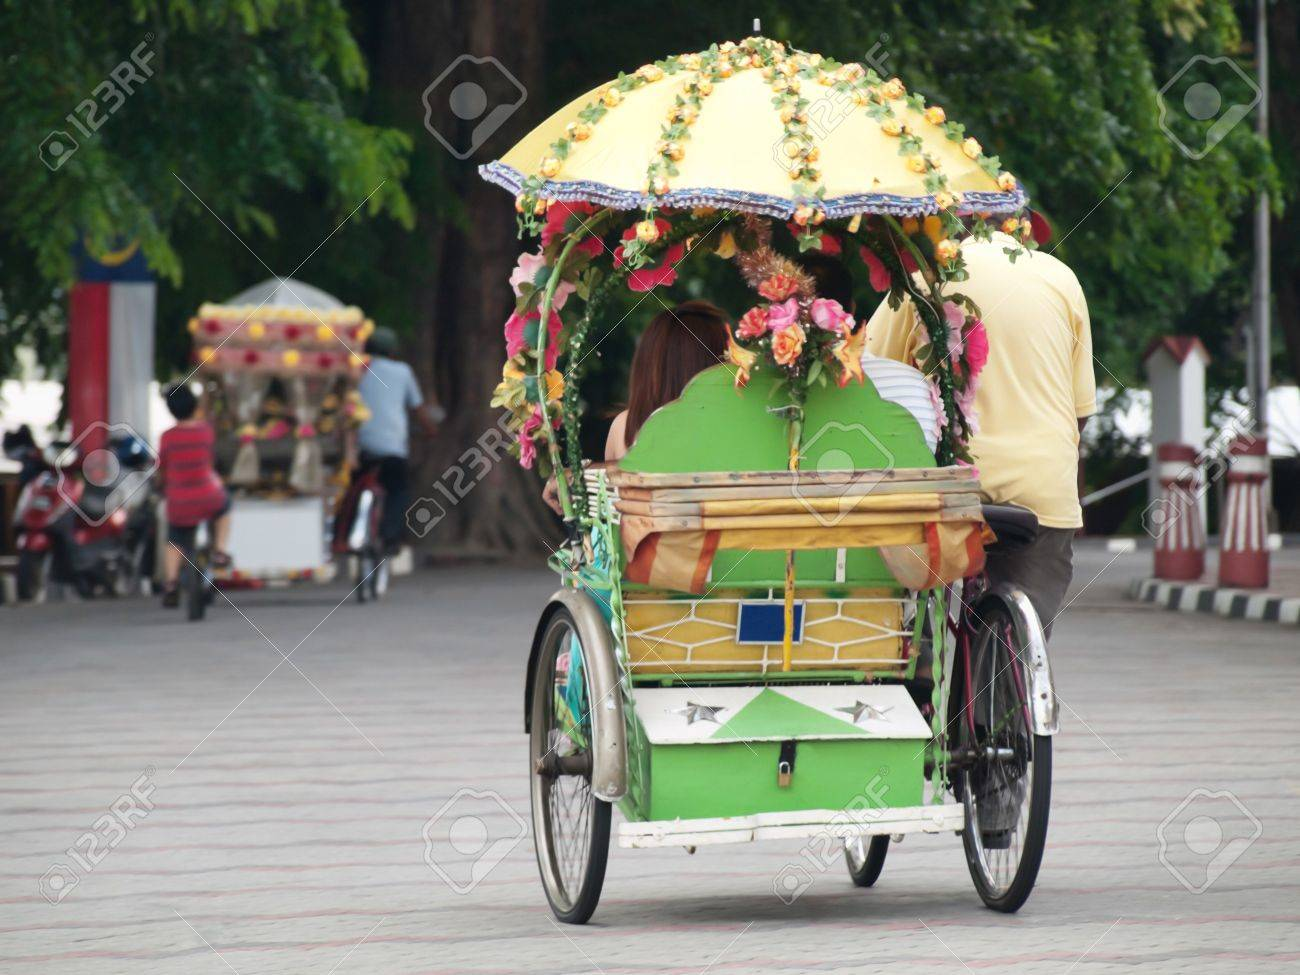 One of the numerous trishaw riding in the streets of Melaka in Malaysia Stock Photo - 7352109